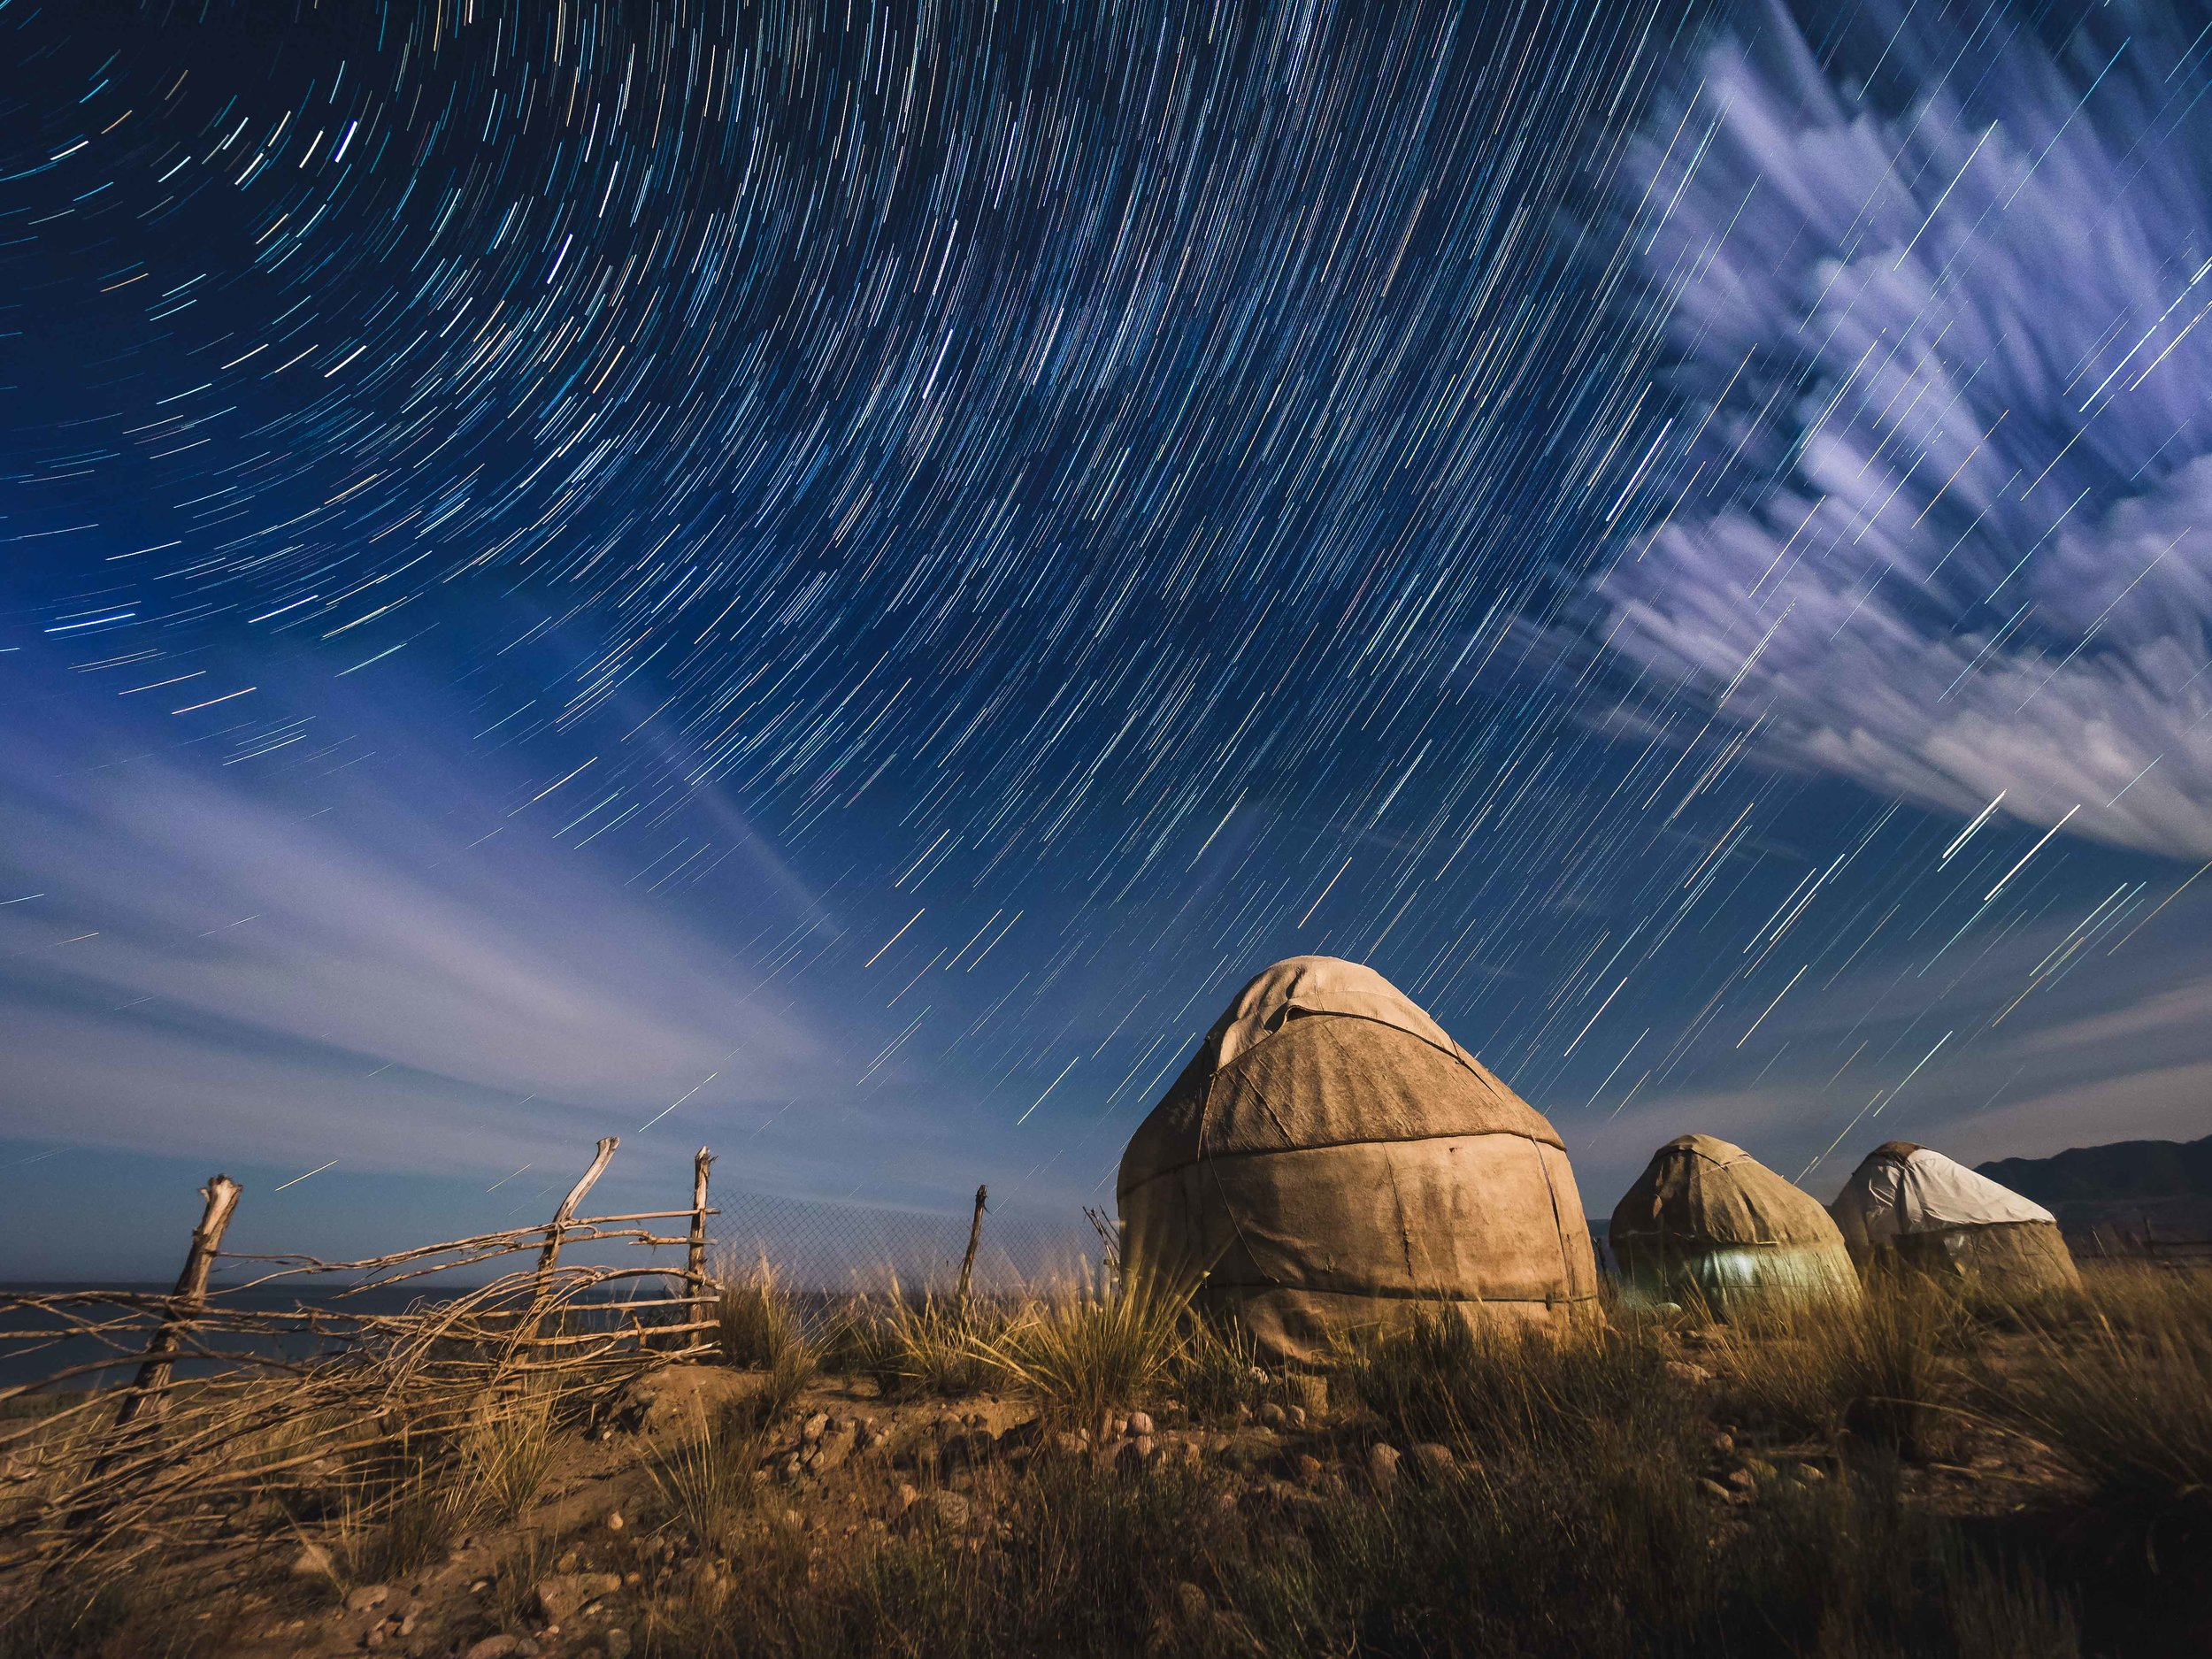 Bel Tam Yurt Camp - Camp situated on the sourthern shores of Issyk-Kul Lake. Photo: Matt Horspool.